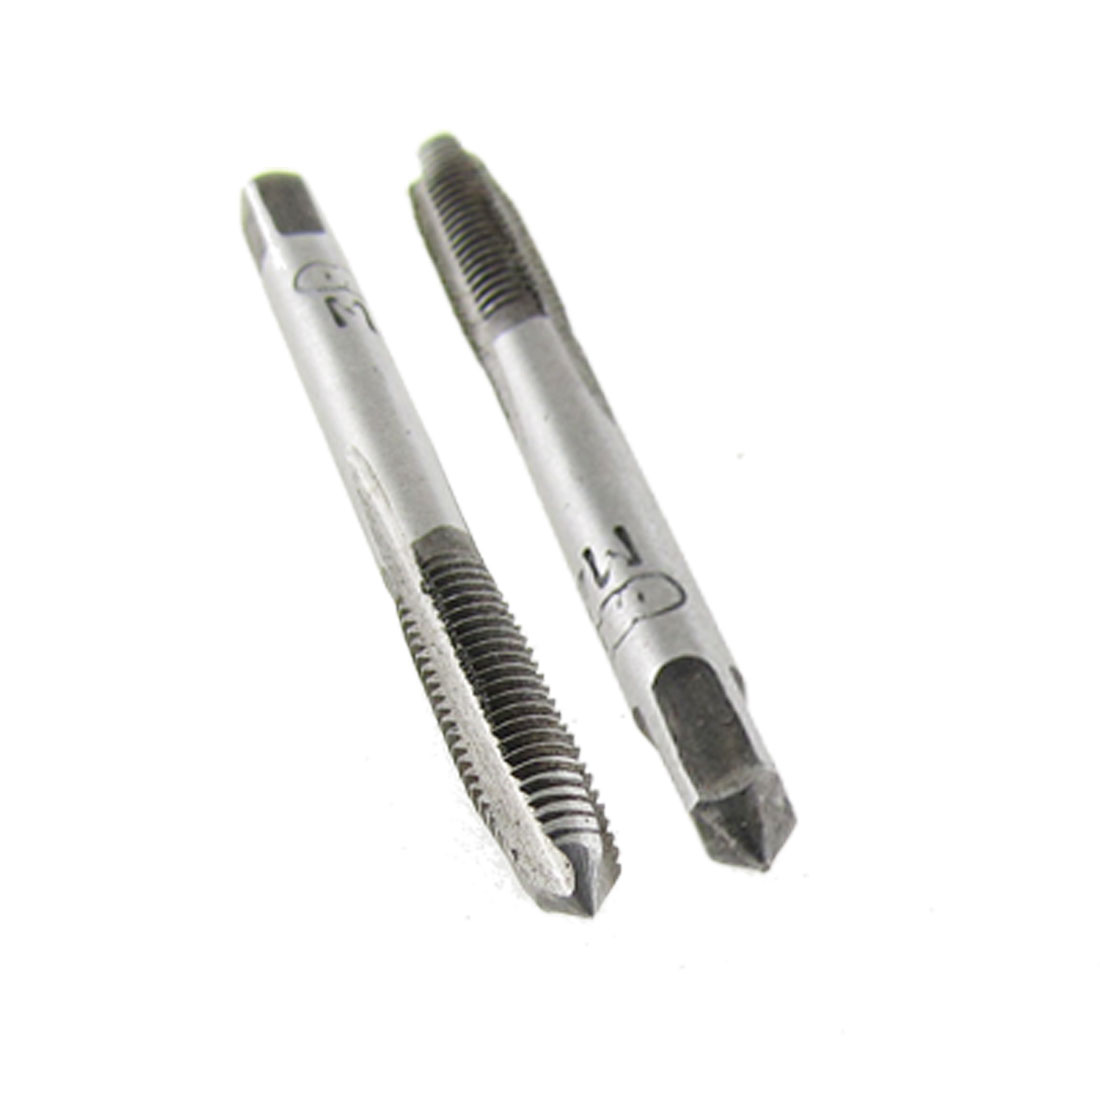 2 Pcs Metal 4mm M4 Screw Thread Metric Taps Hand Tool